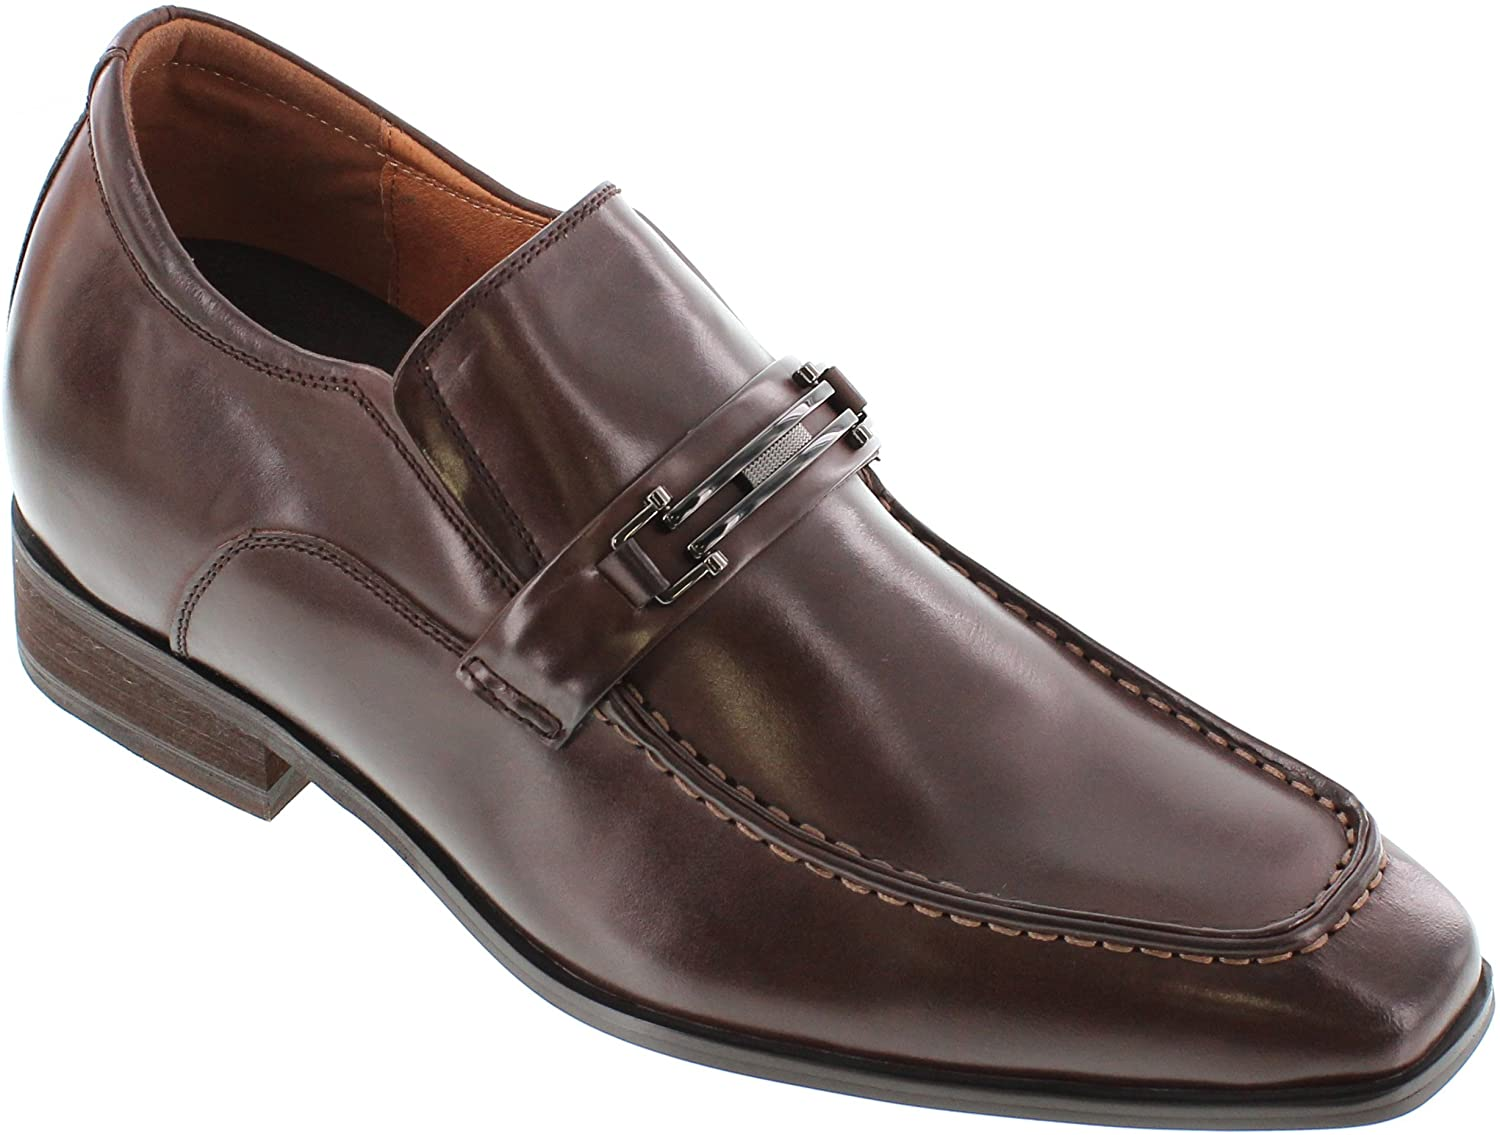 CALTO Men's Invisible Height Increasing Elevator Dress Shoes - Dark Brown Premium Leather Slip-on Formal Loafers with Faux Leather Bottom Sole - 3 Inches Taller - G65032